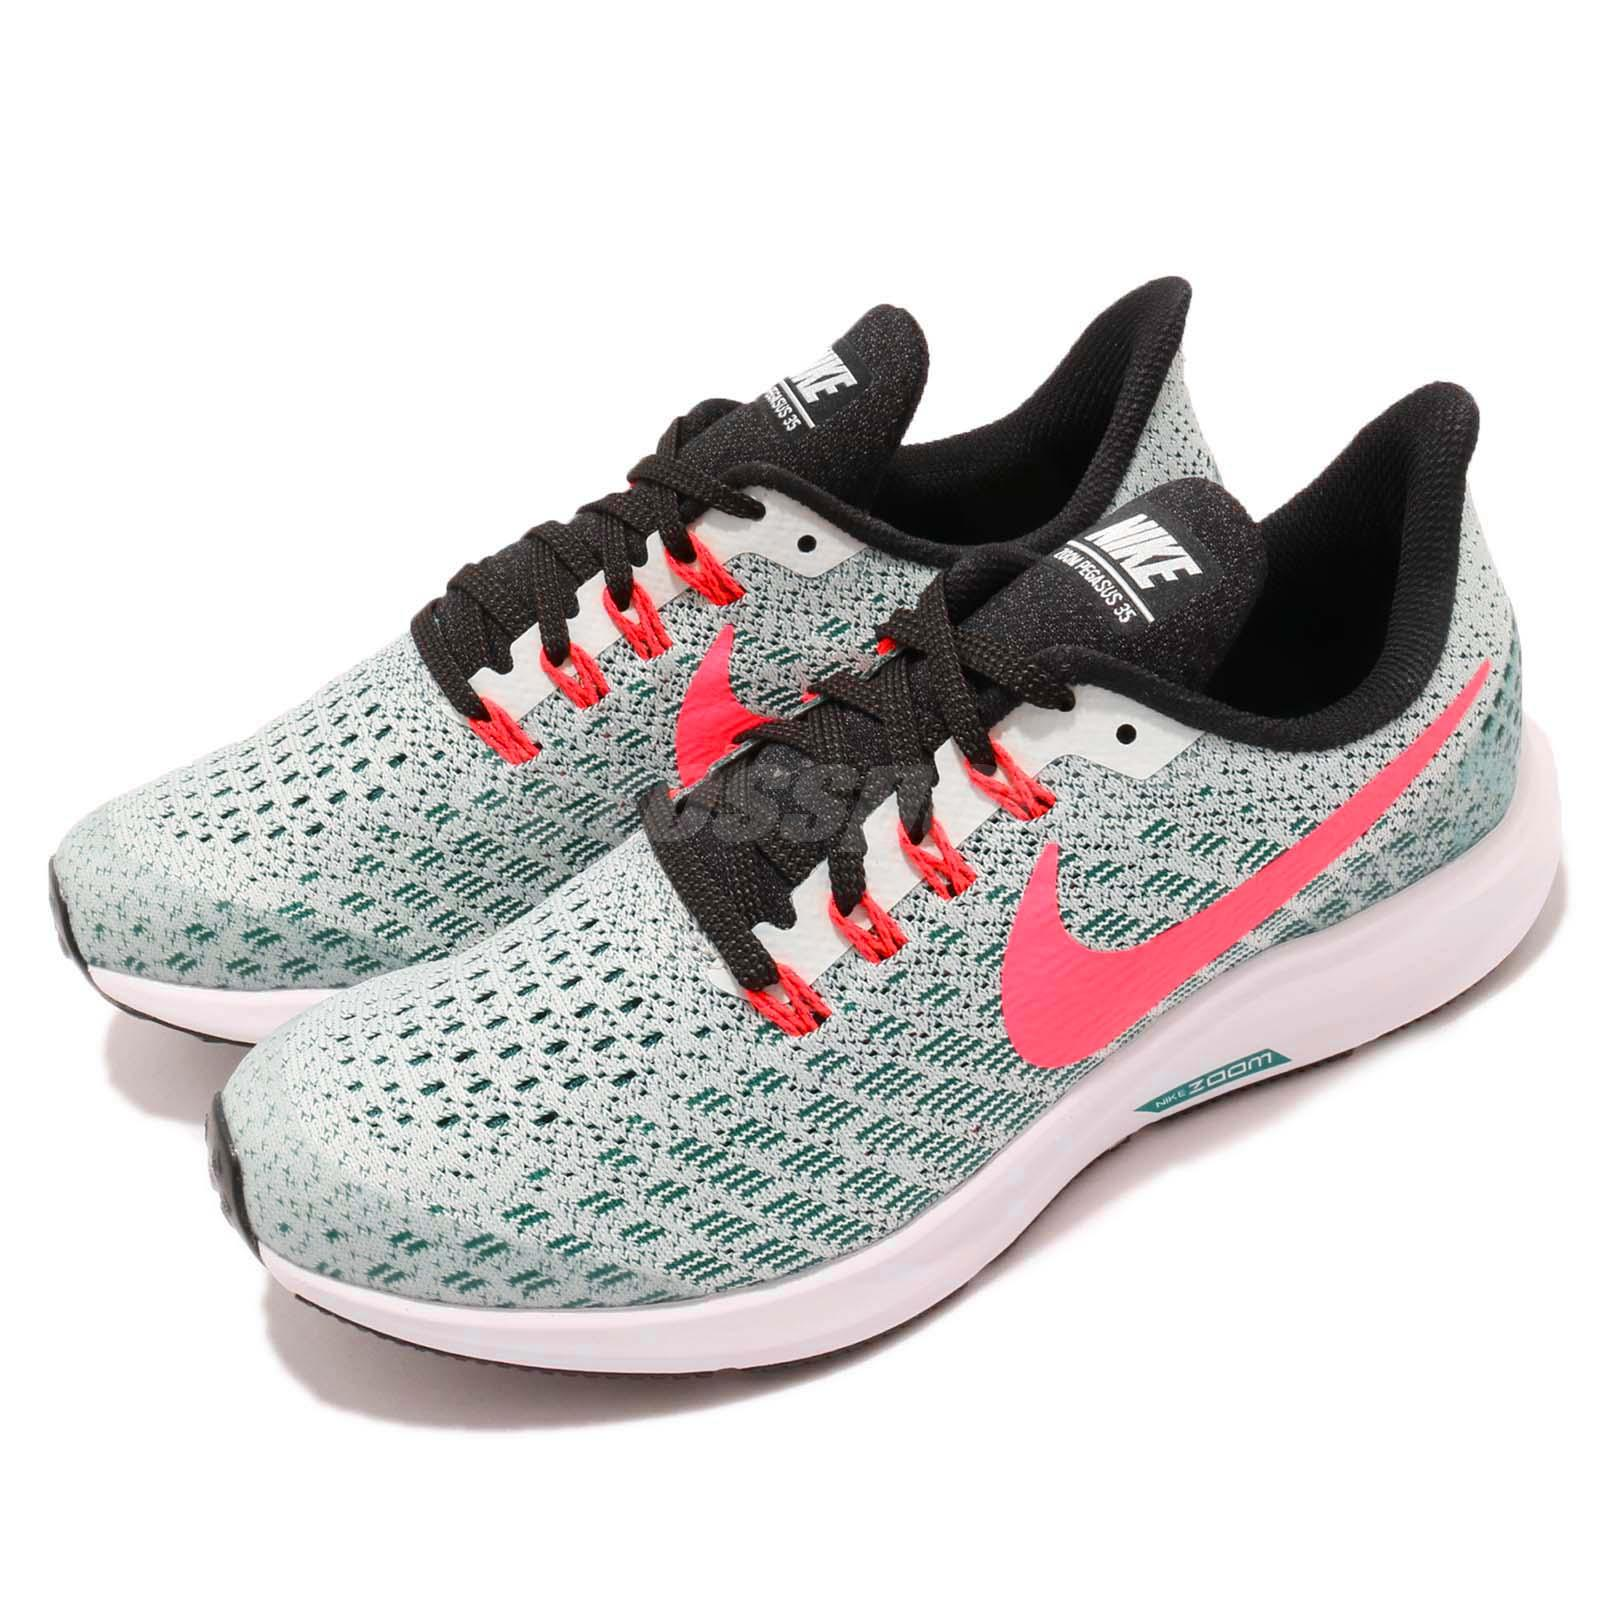 the best attitude b9393 3e615 Details about Nike Air Zoom Pegasus 35 GS Barely Grey Hot Punch Kid Youth  Shoes AH3482-004